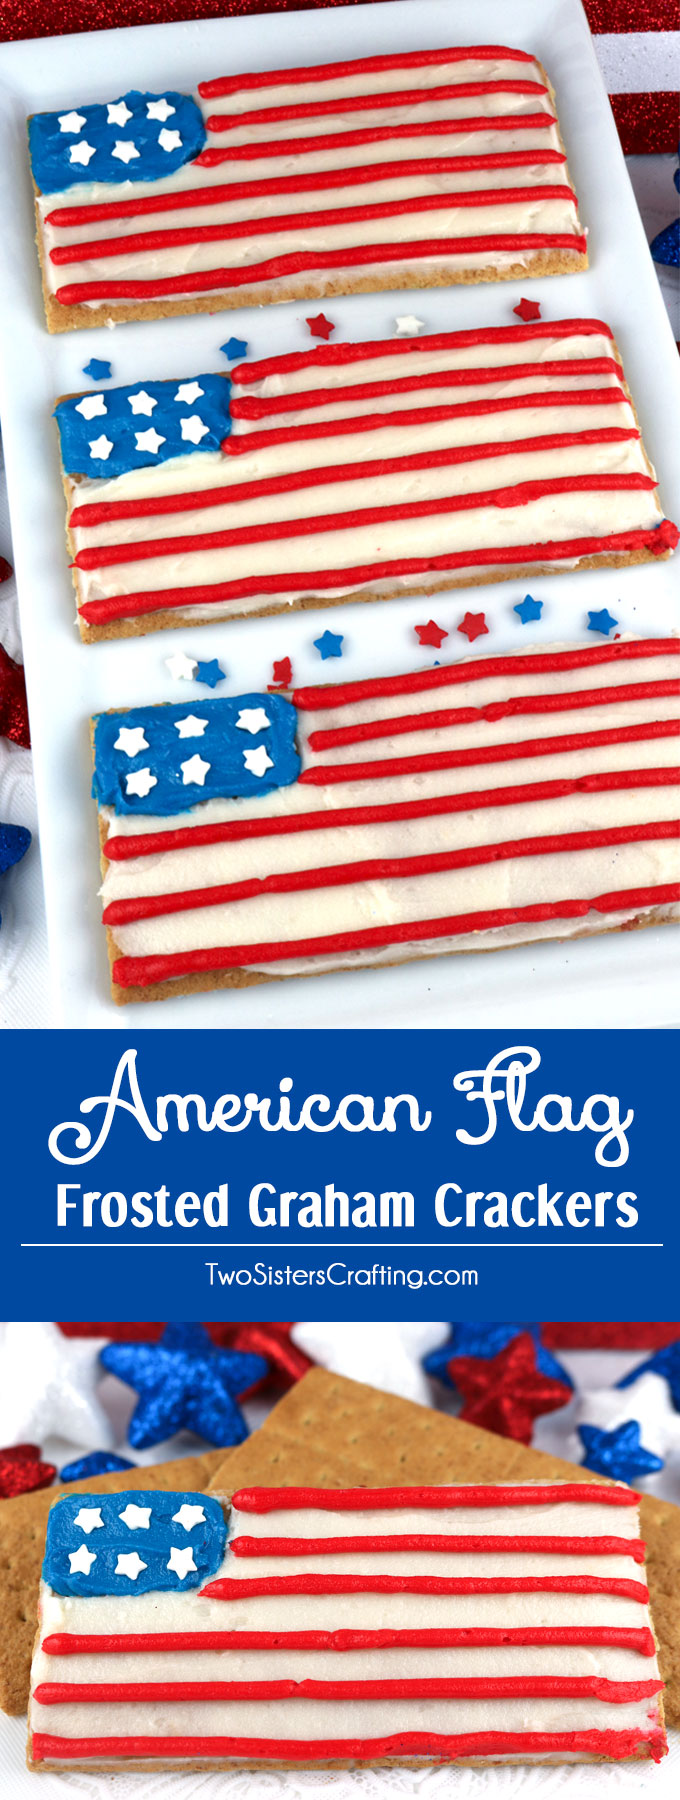 American Flag Frosted Graham Crackers - Two Sisters Crafting